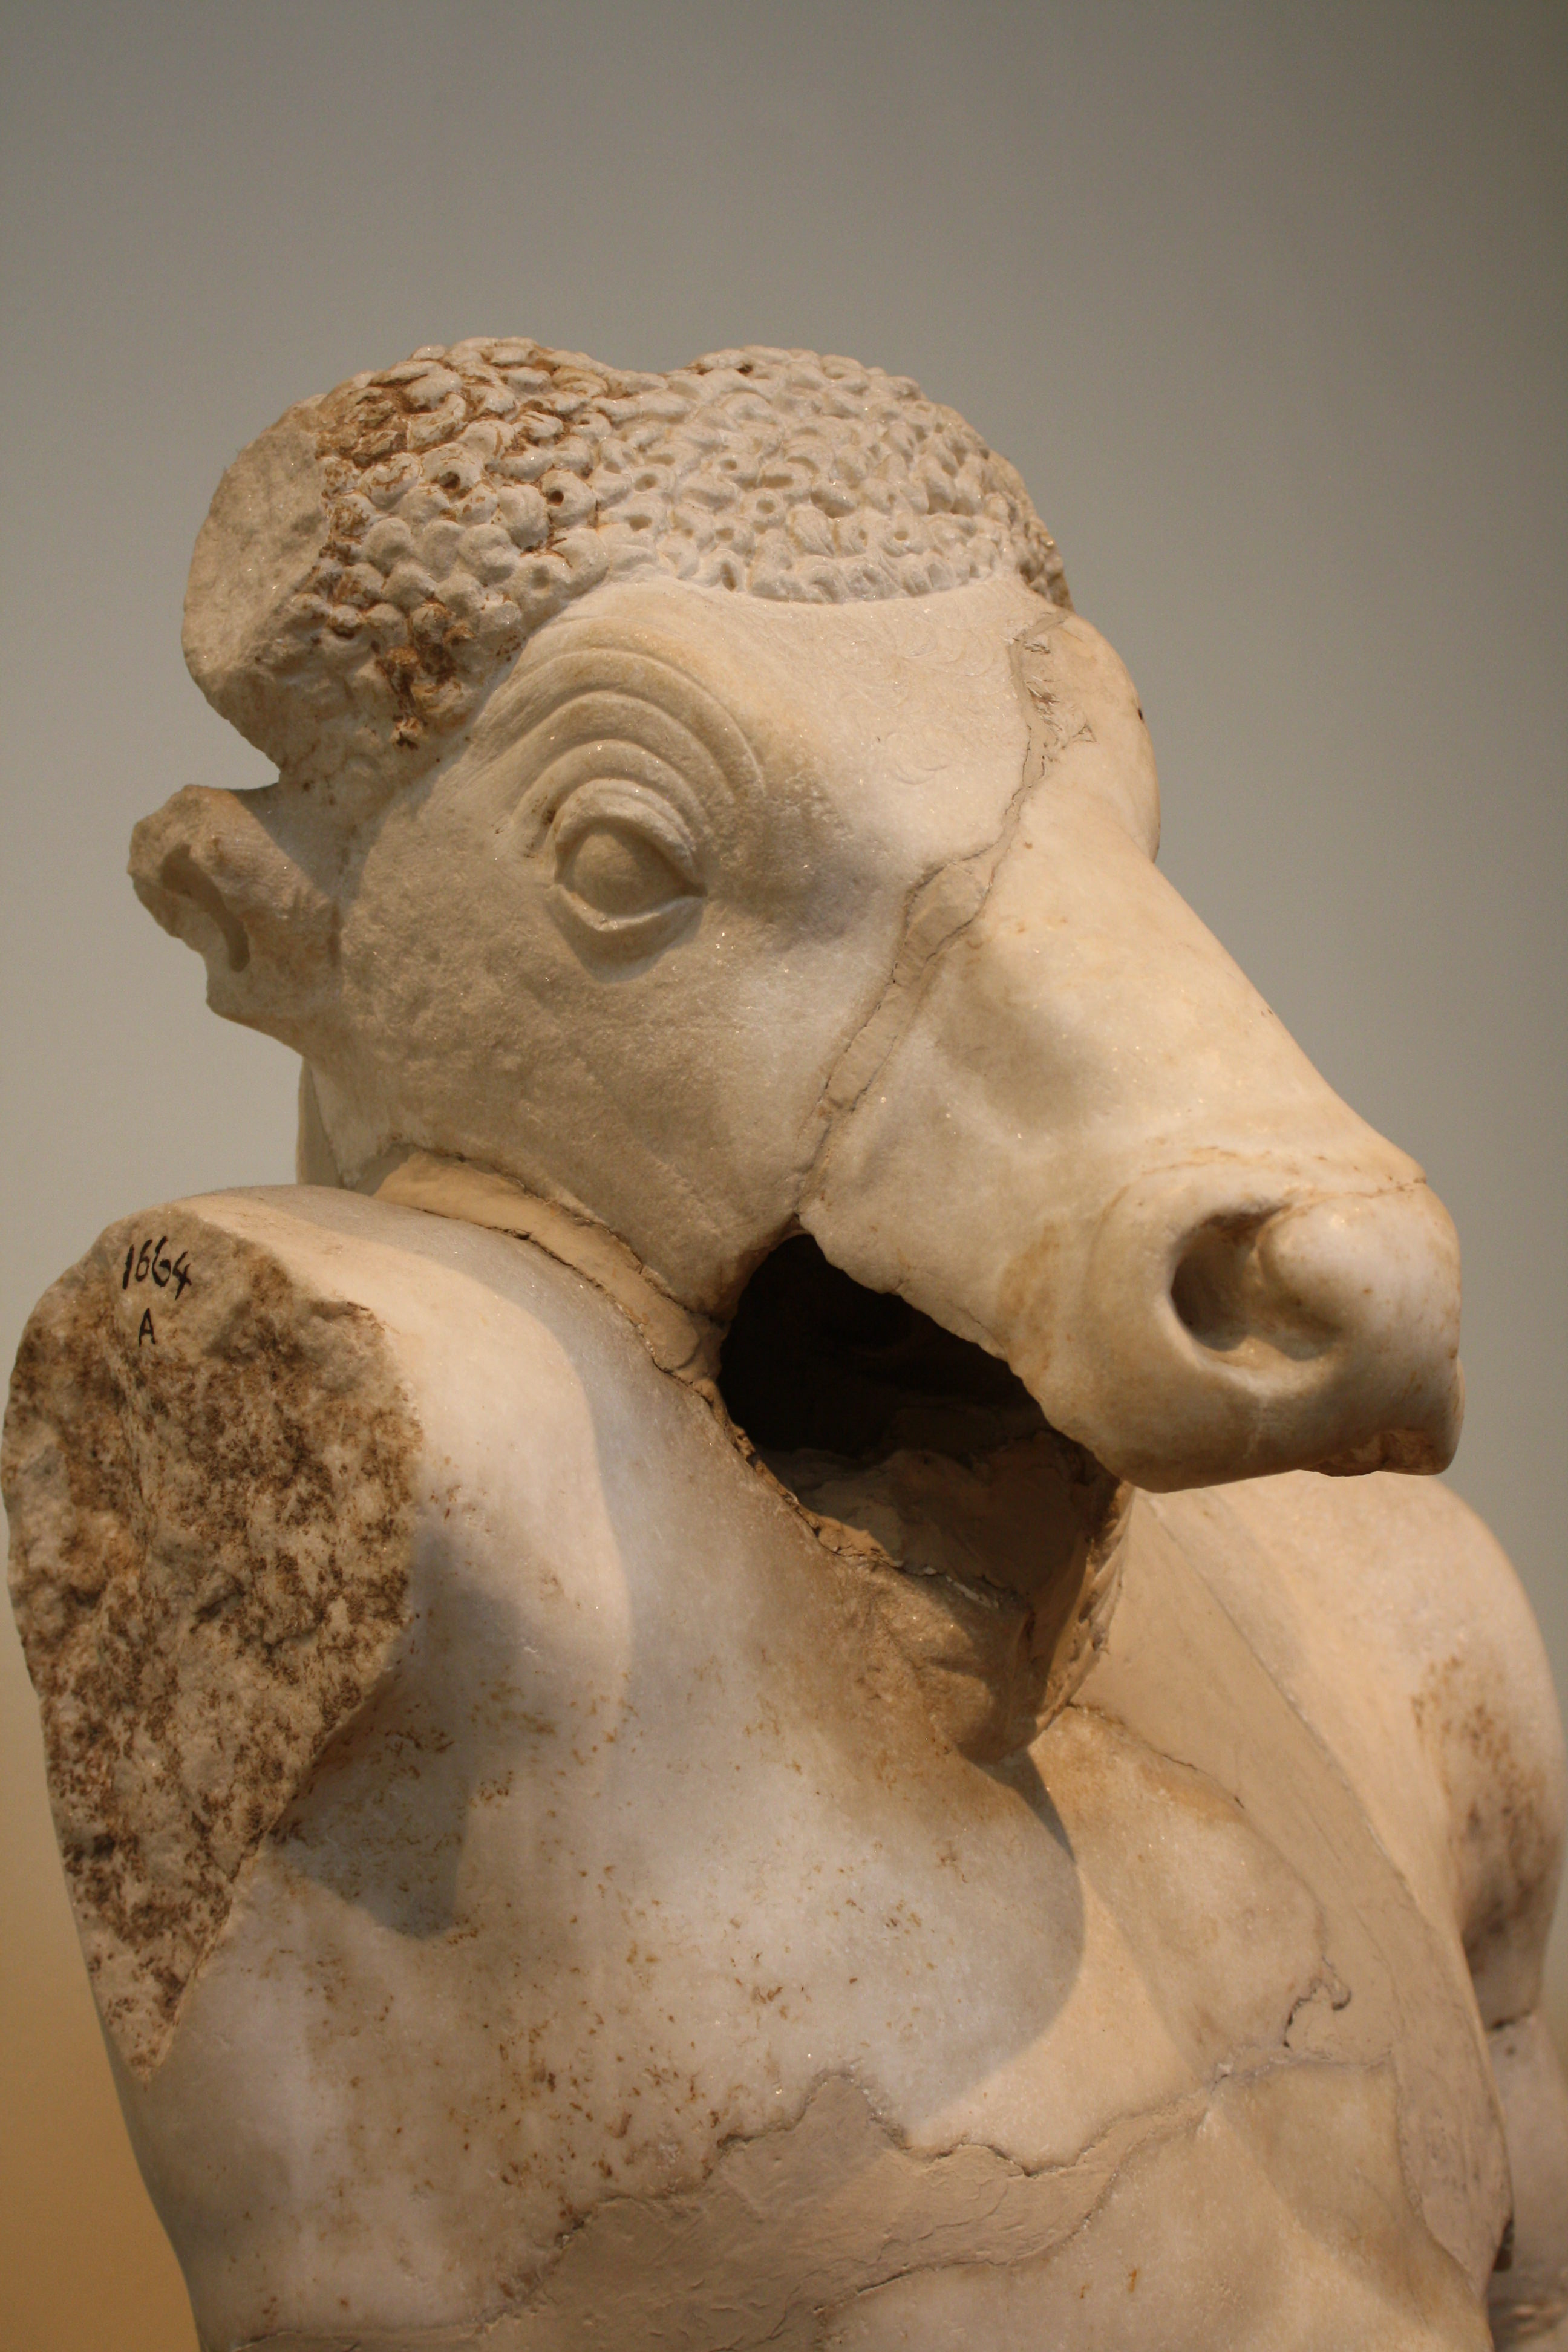 Minotaur ancient history encyclopedia in greek mythology the minotaur was a monster with the body of a man and the head and tail of a bull the minotaur was the offspring of the cretan queen buycottarizona